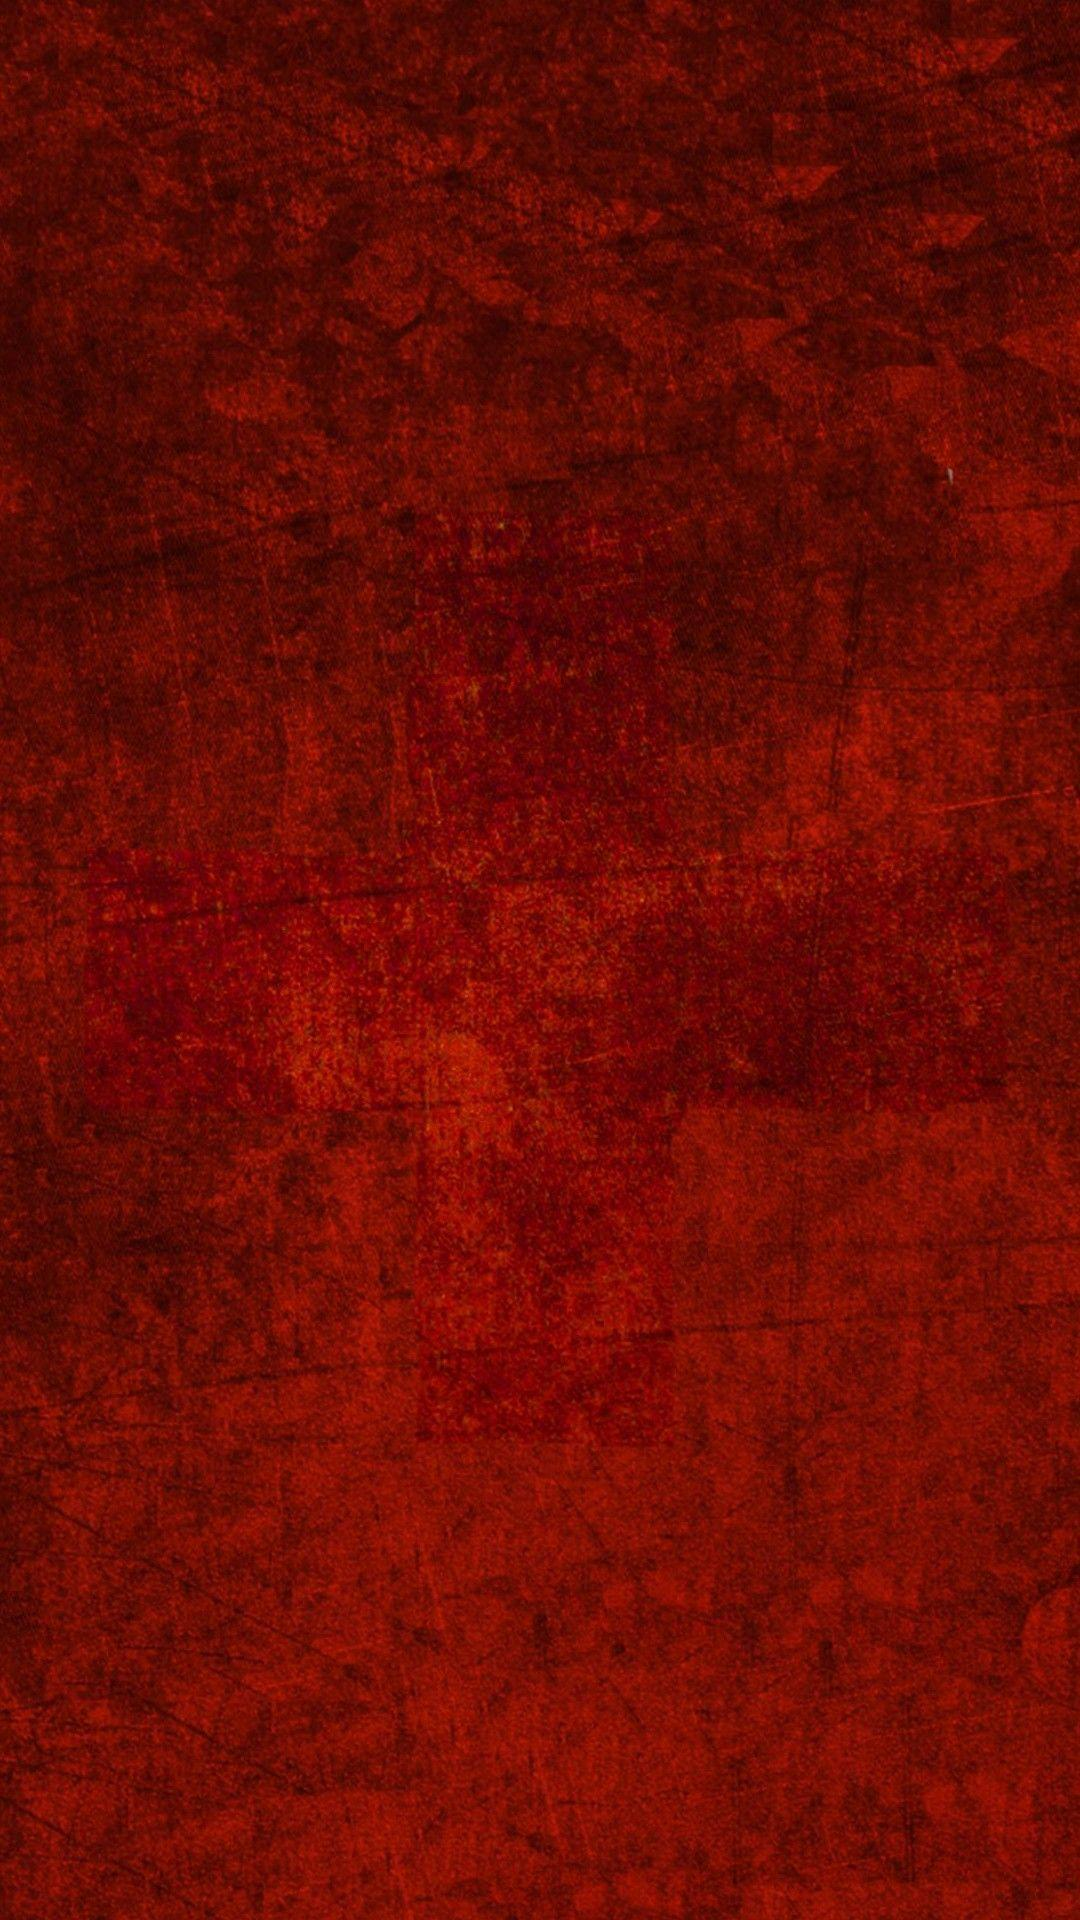 73 entries in Red textured wallpapers group